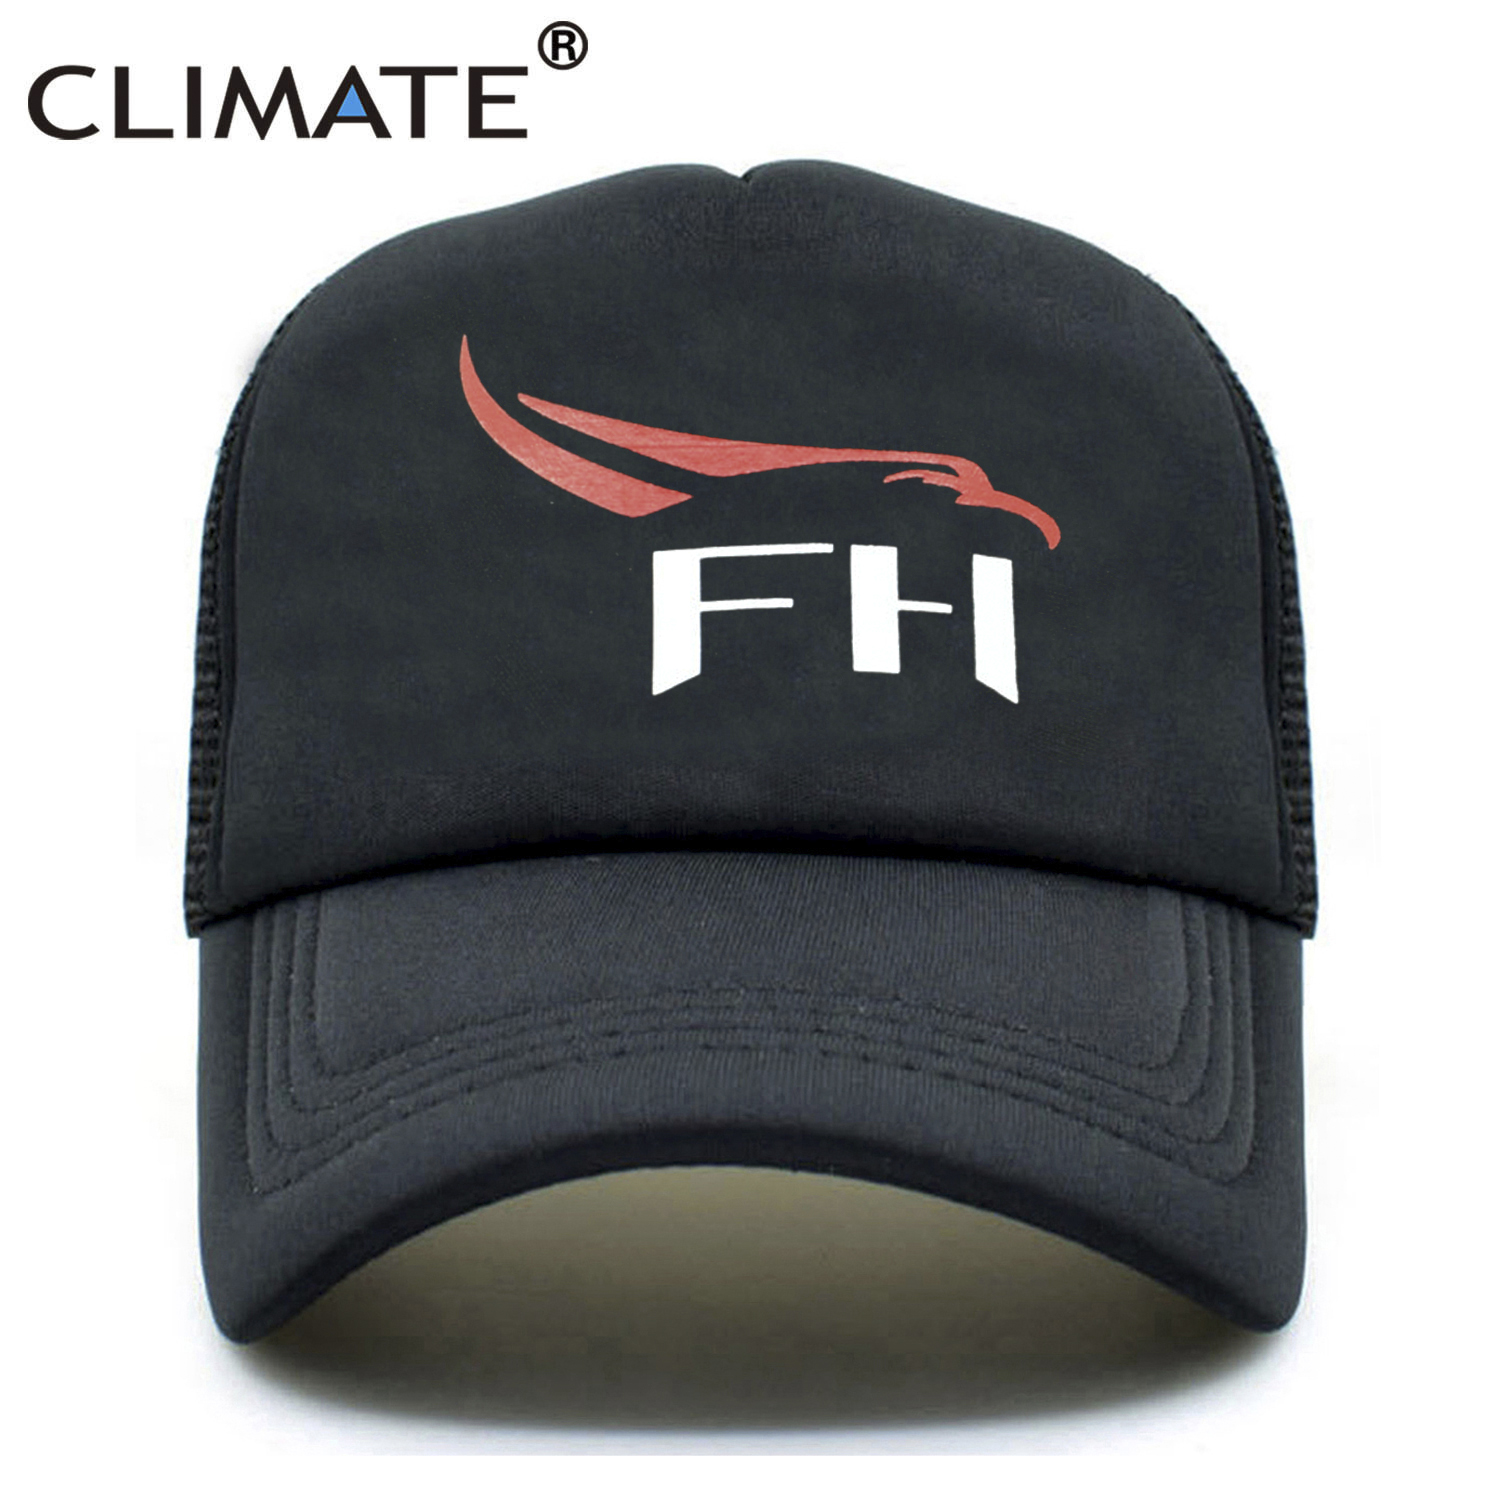 Cotton baseball cap men and women outdoor student training hat personality solid color cap